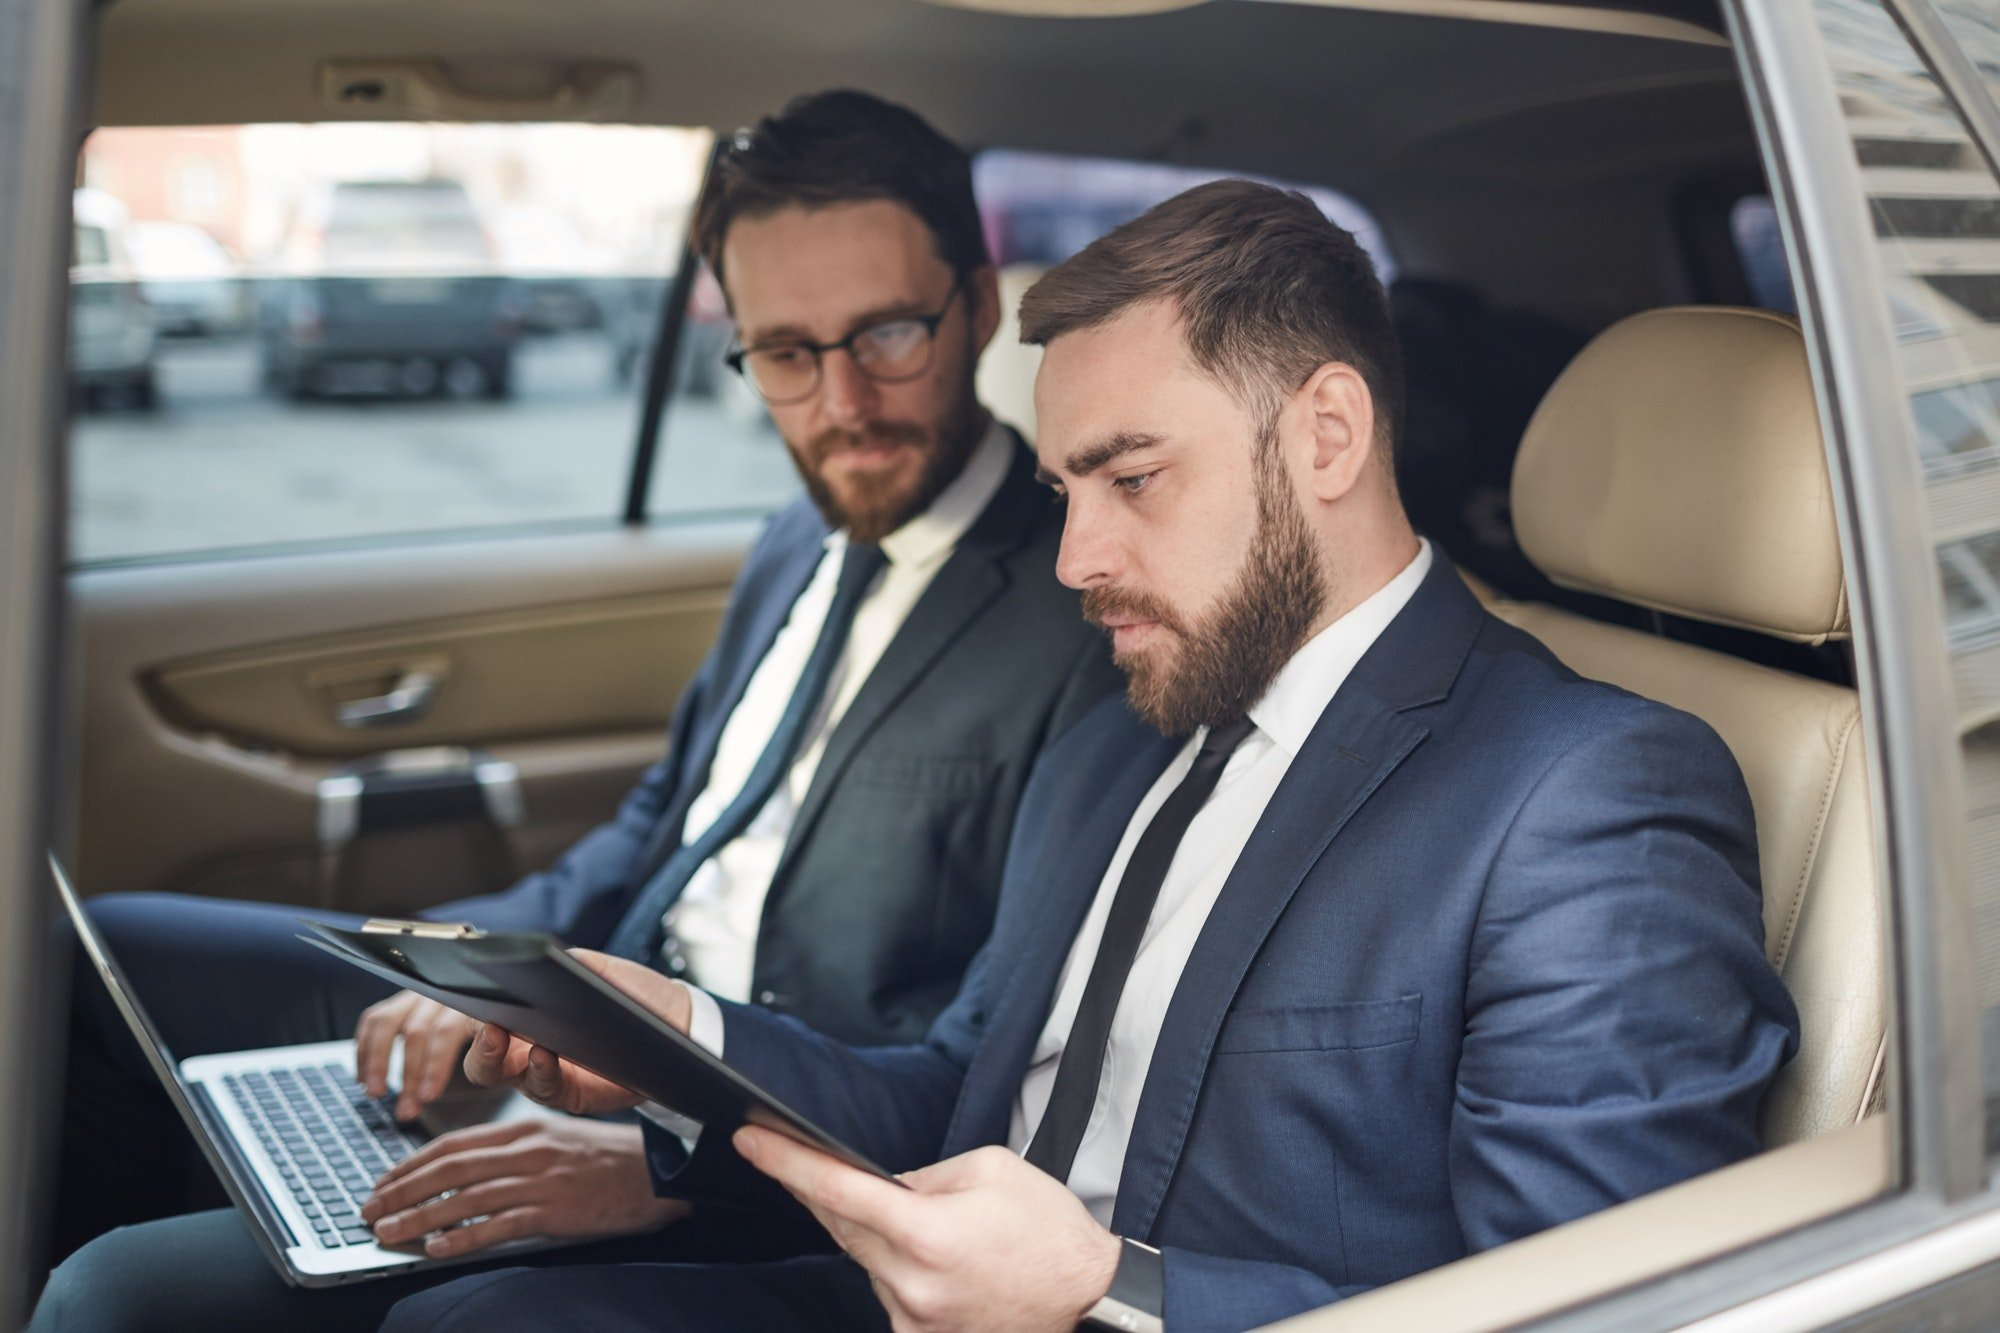 Business people working in the car for Smile Car Leasing